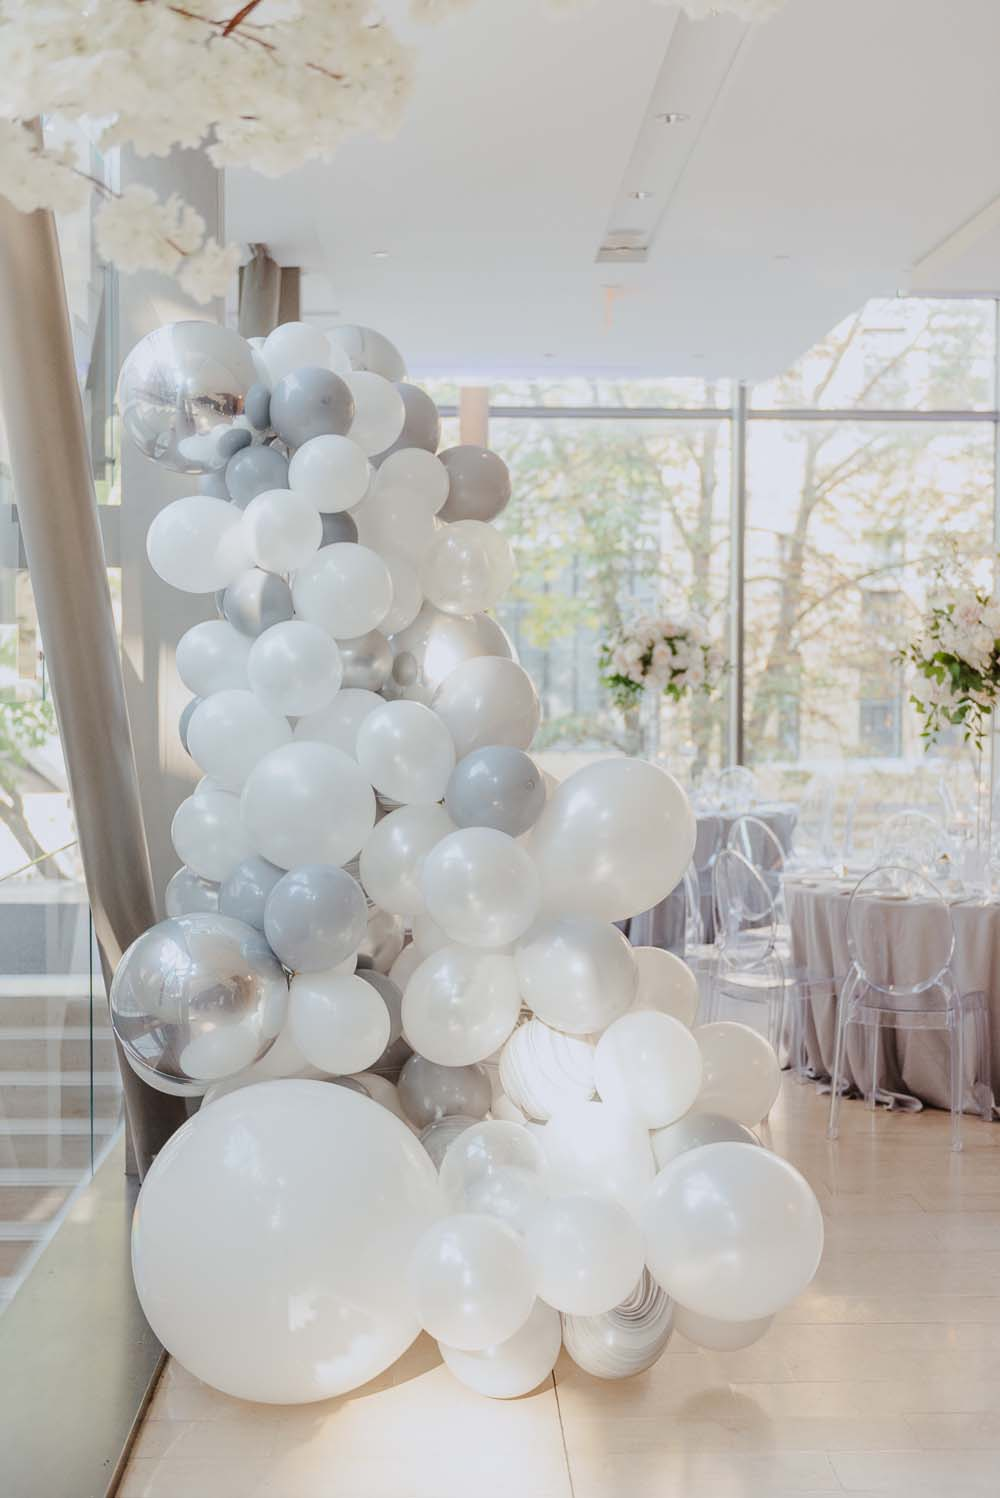 An Opulent Wedding At The Royal Conservatory Of Music - balloons